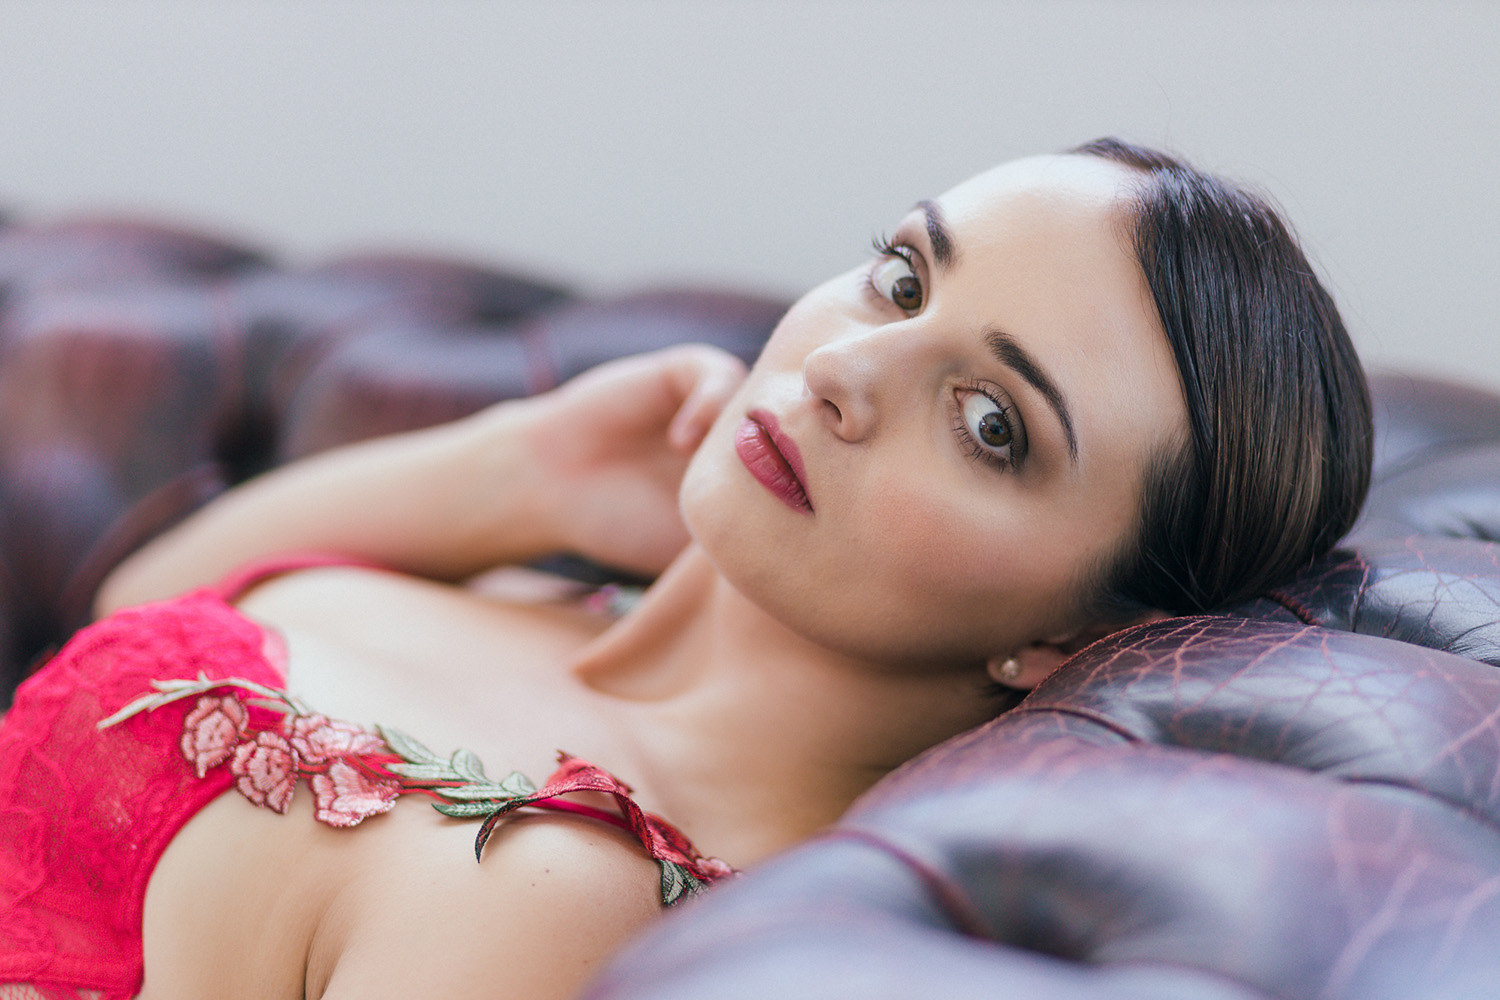 Boudoir Showcase – Fashion Model Emily Miller